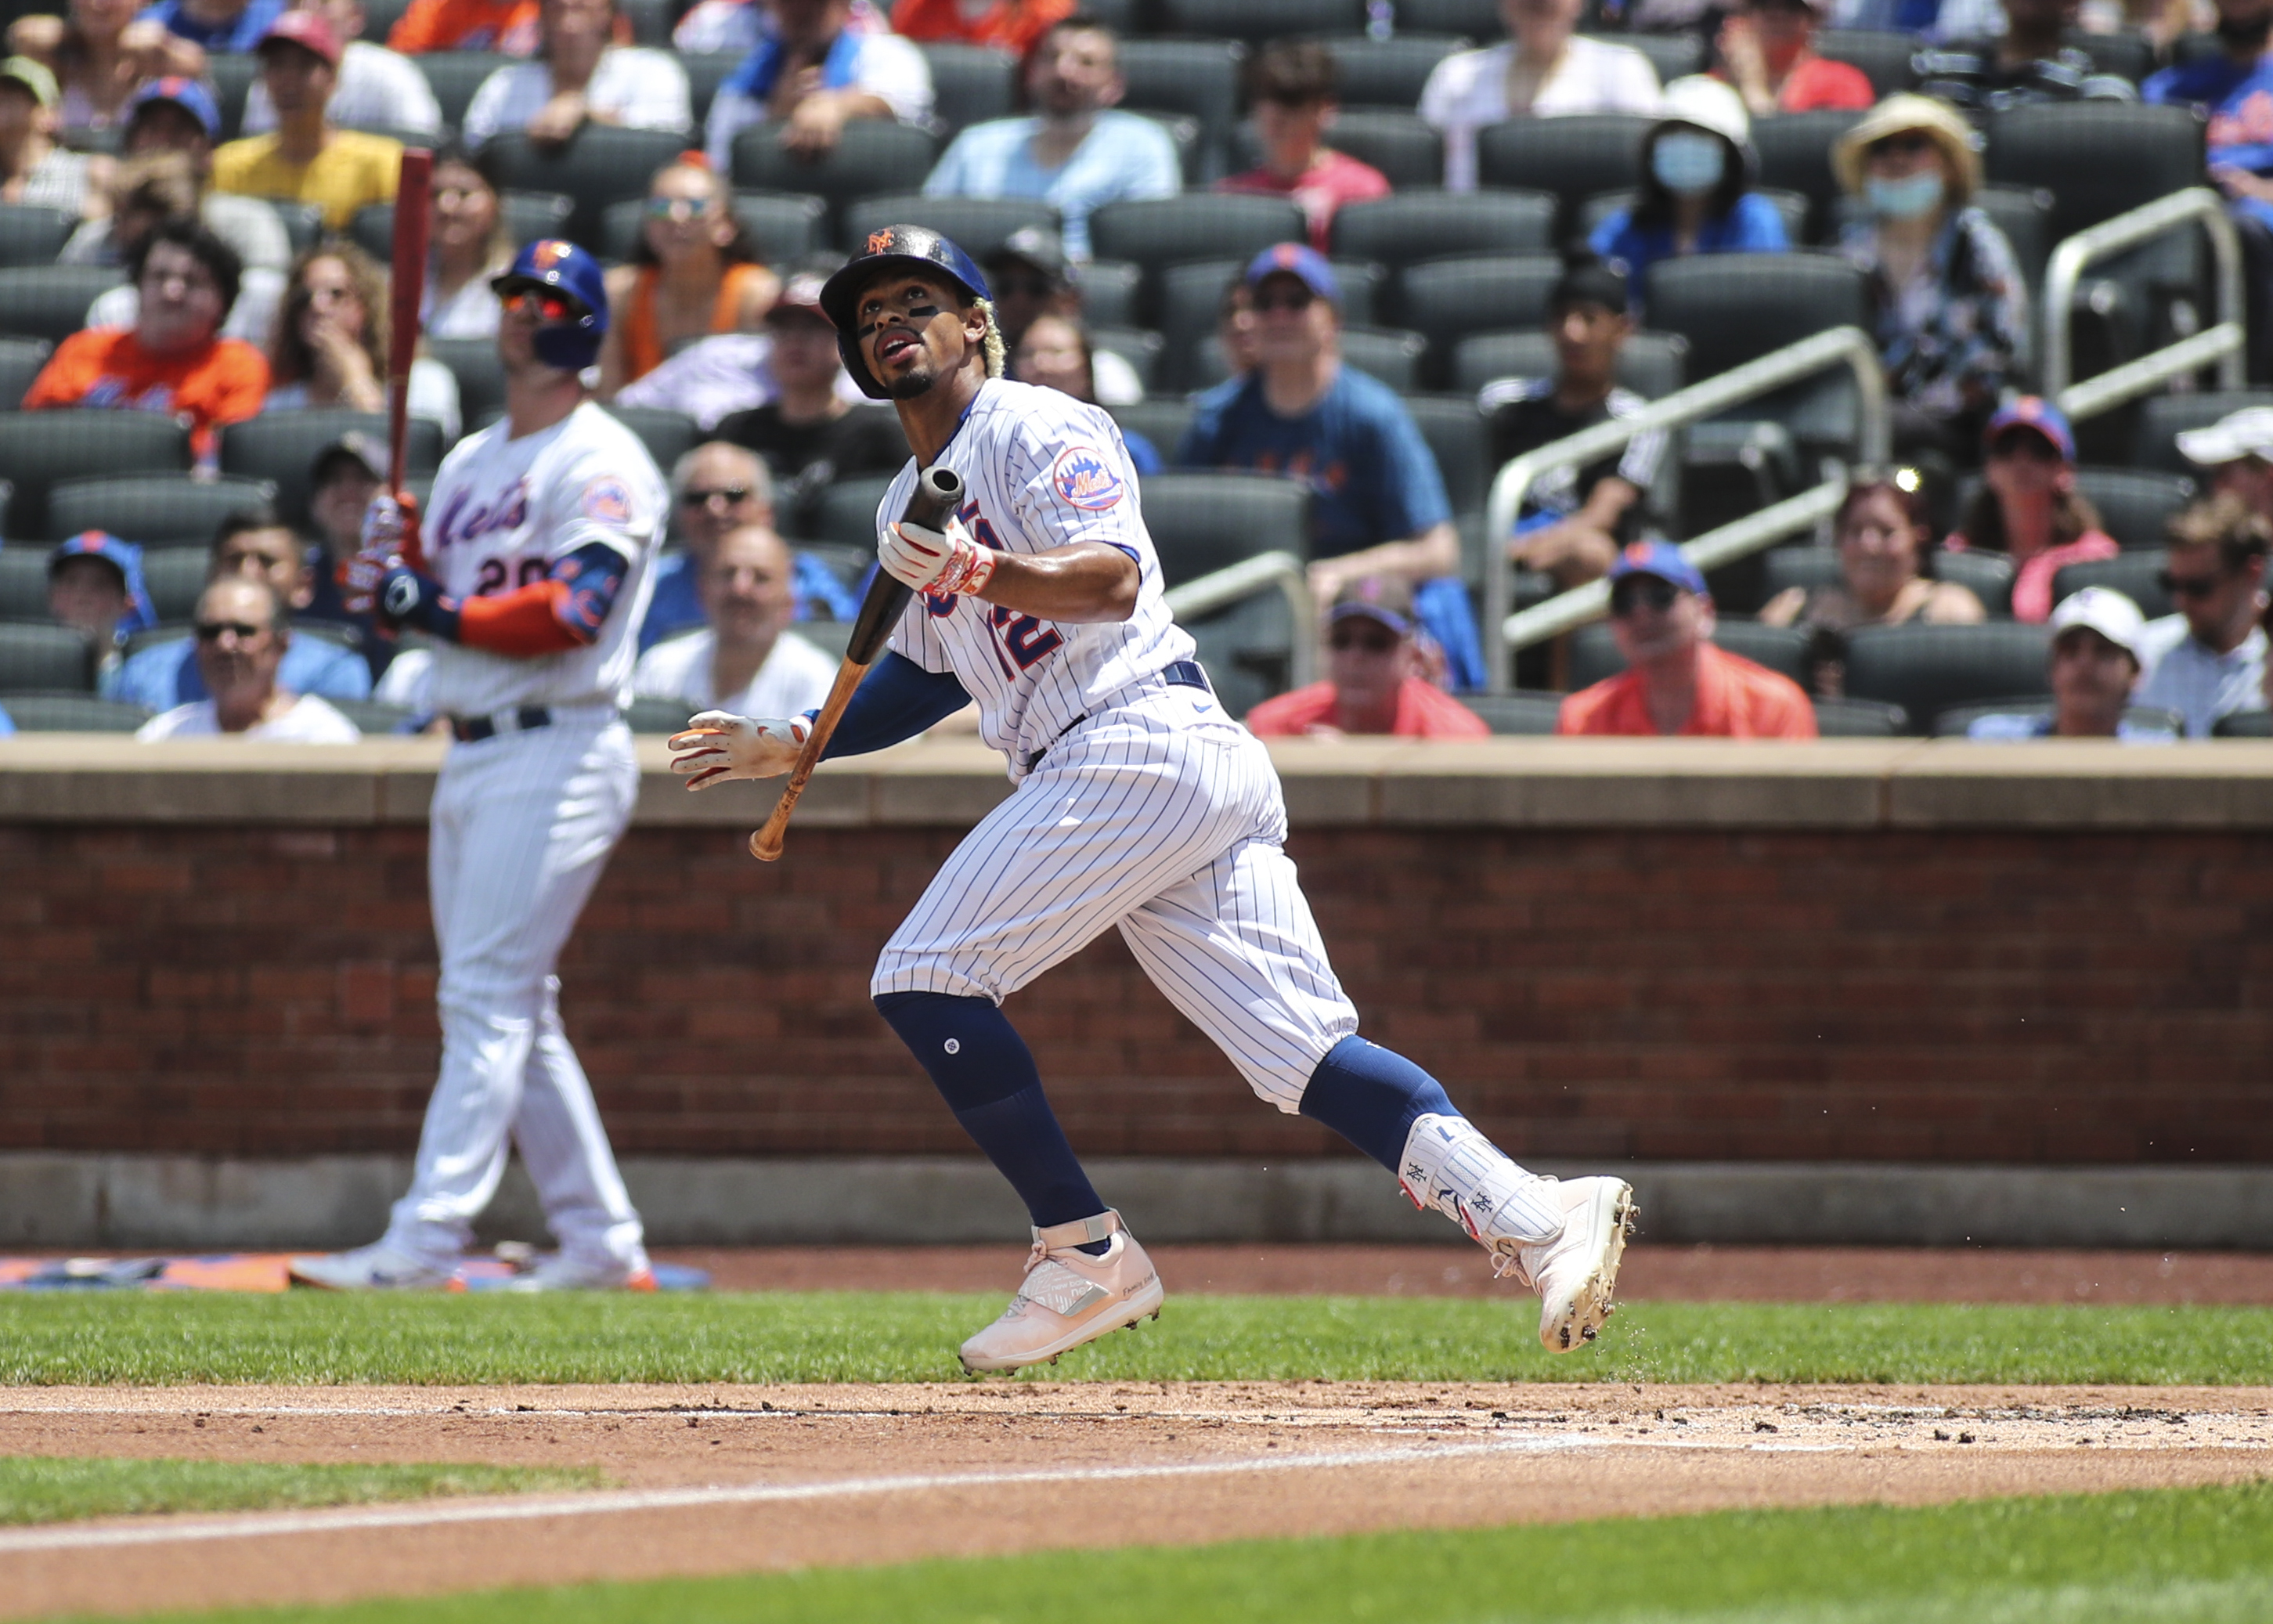 6/28/21 Game Preview: New York Mets at Washington Nationals